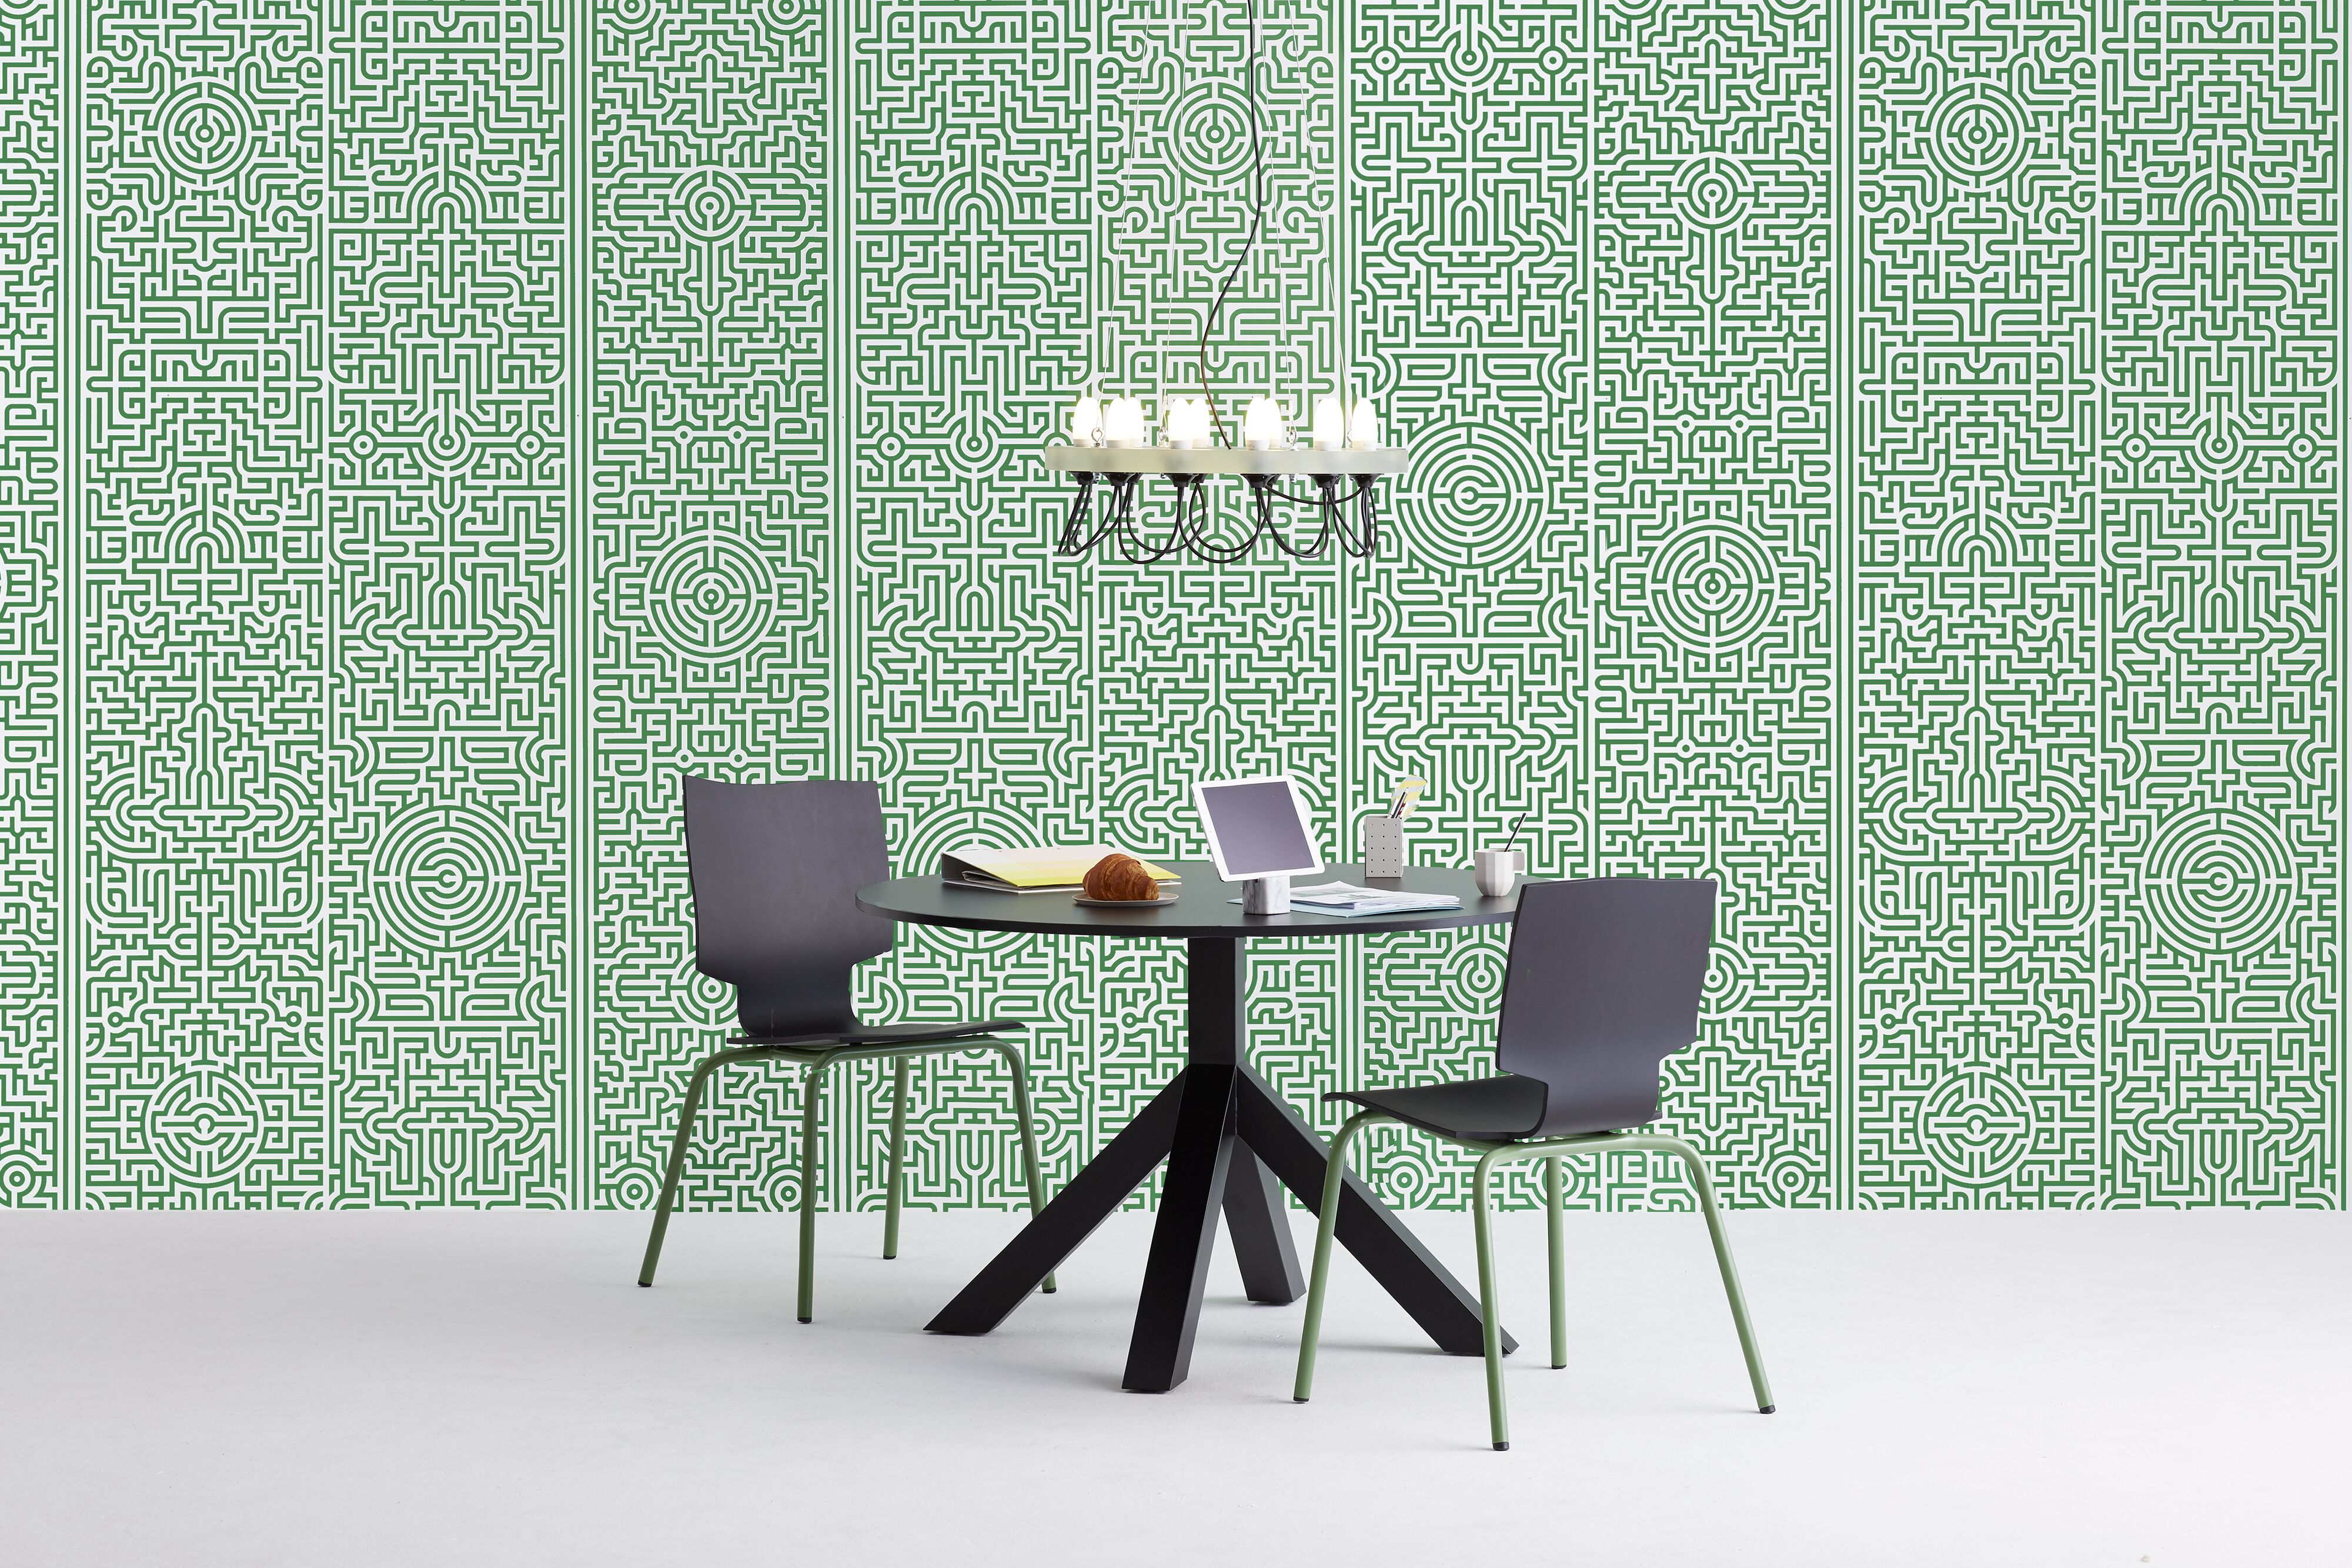 Gispen Dukdalf table with black frame and black tabletop with More or Less chair and Centraal Museum chandelier with tablet in front of green patern background front view